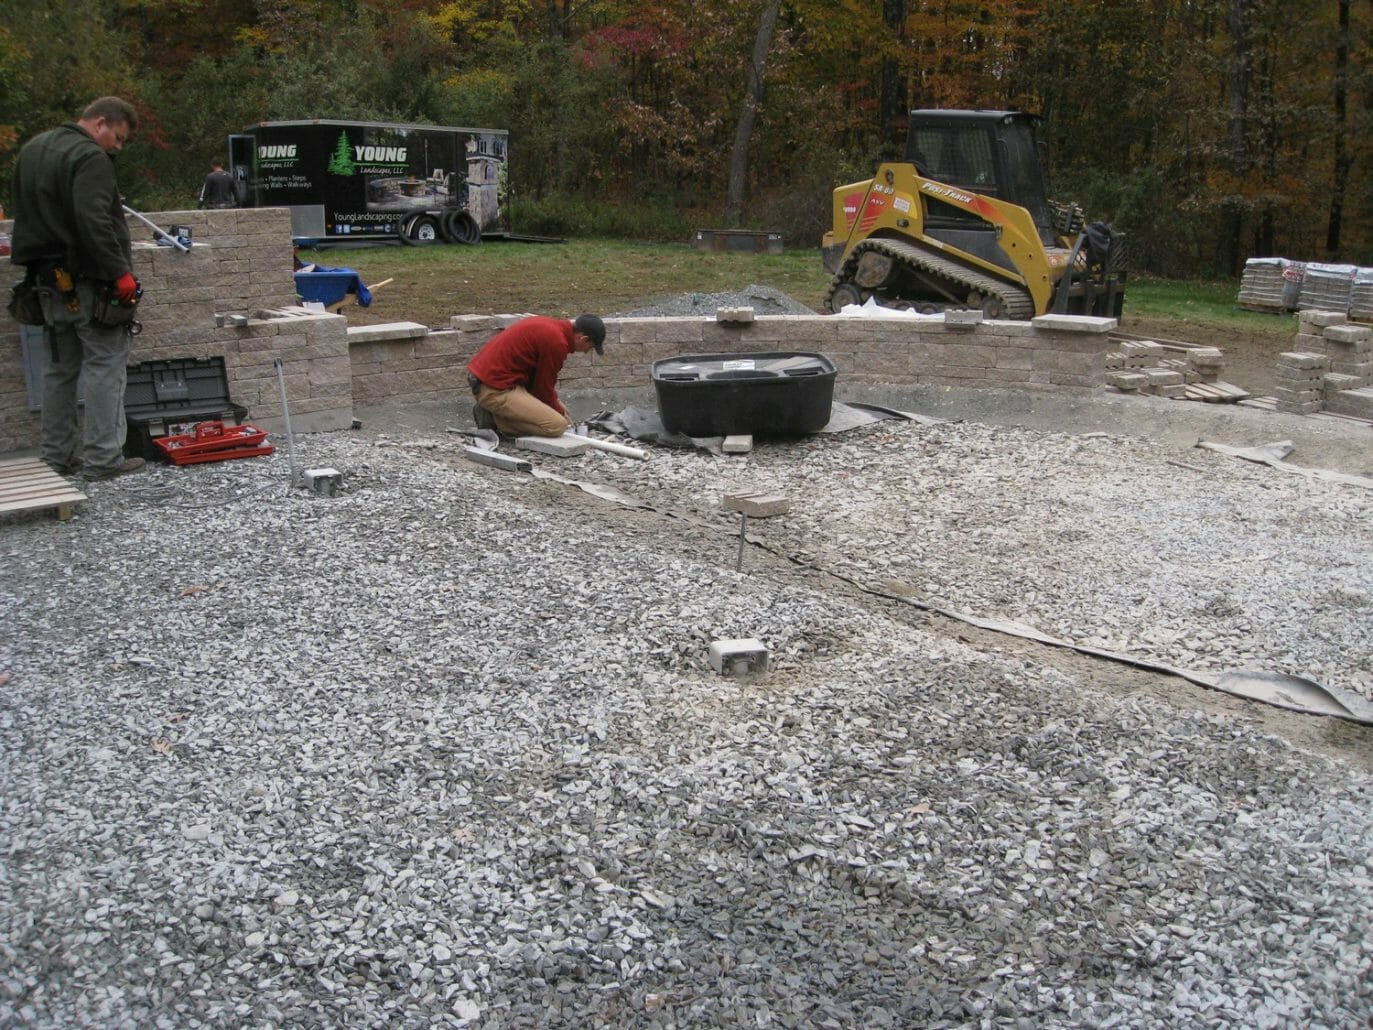 Wynantskill NY hardscape project management 1373x1030 - Landscape Plan Installation and Project Management